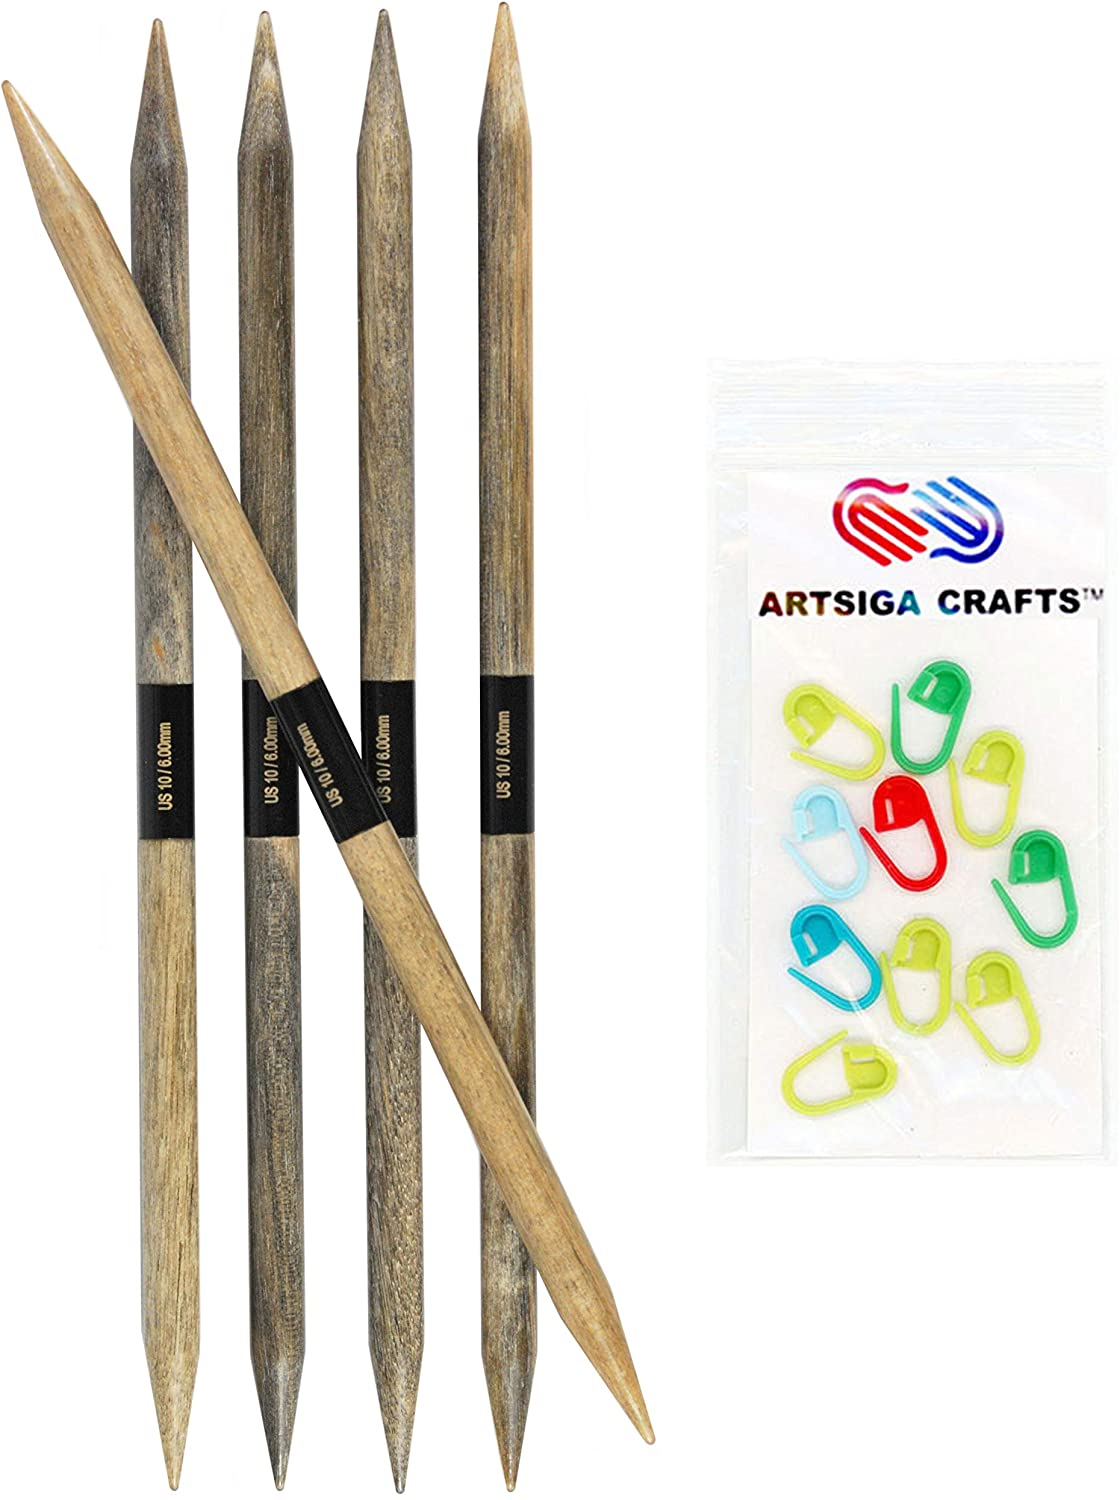 Lykke Knitting Needles Double Point DPN Driftwood 6 inches Long (15cm) US 10.5 (6.5mm) Bundle with Artsiga Crafts Stitch Markers